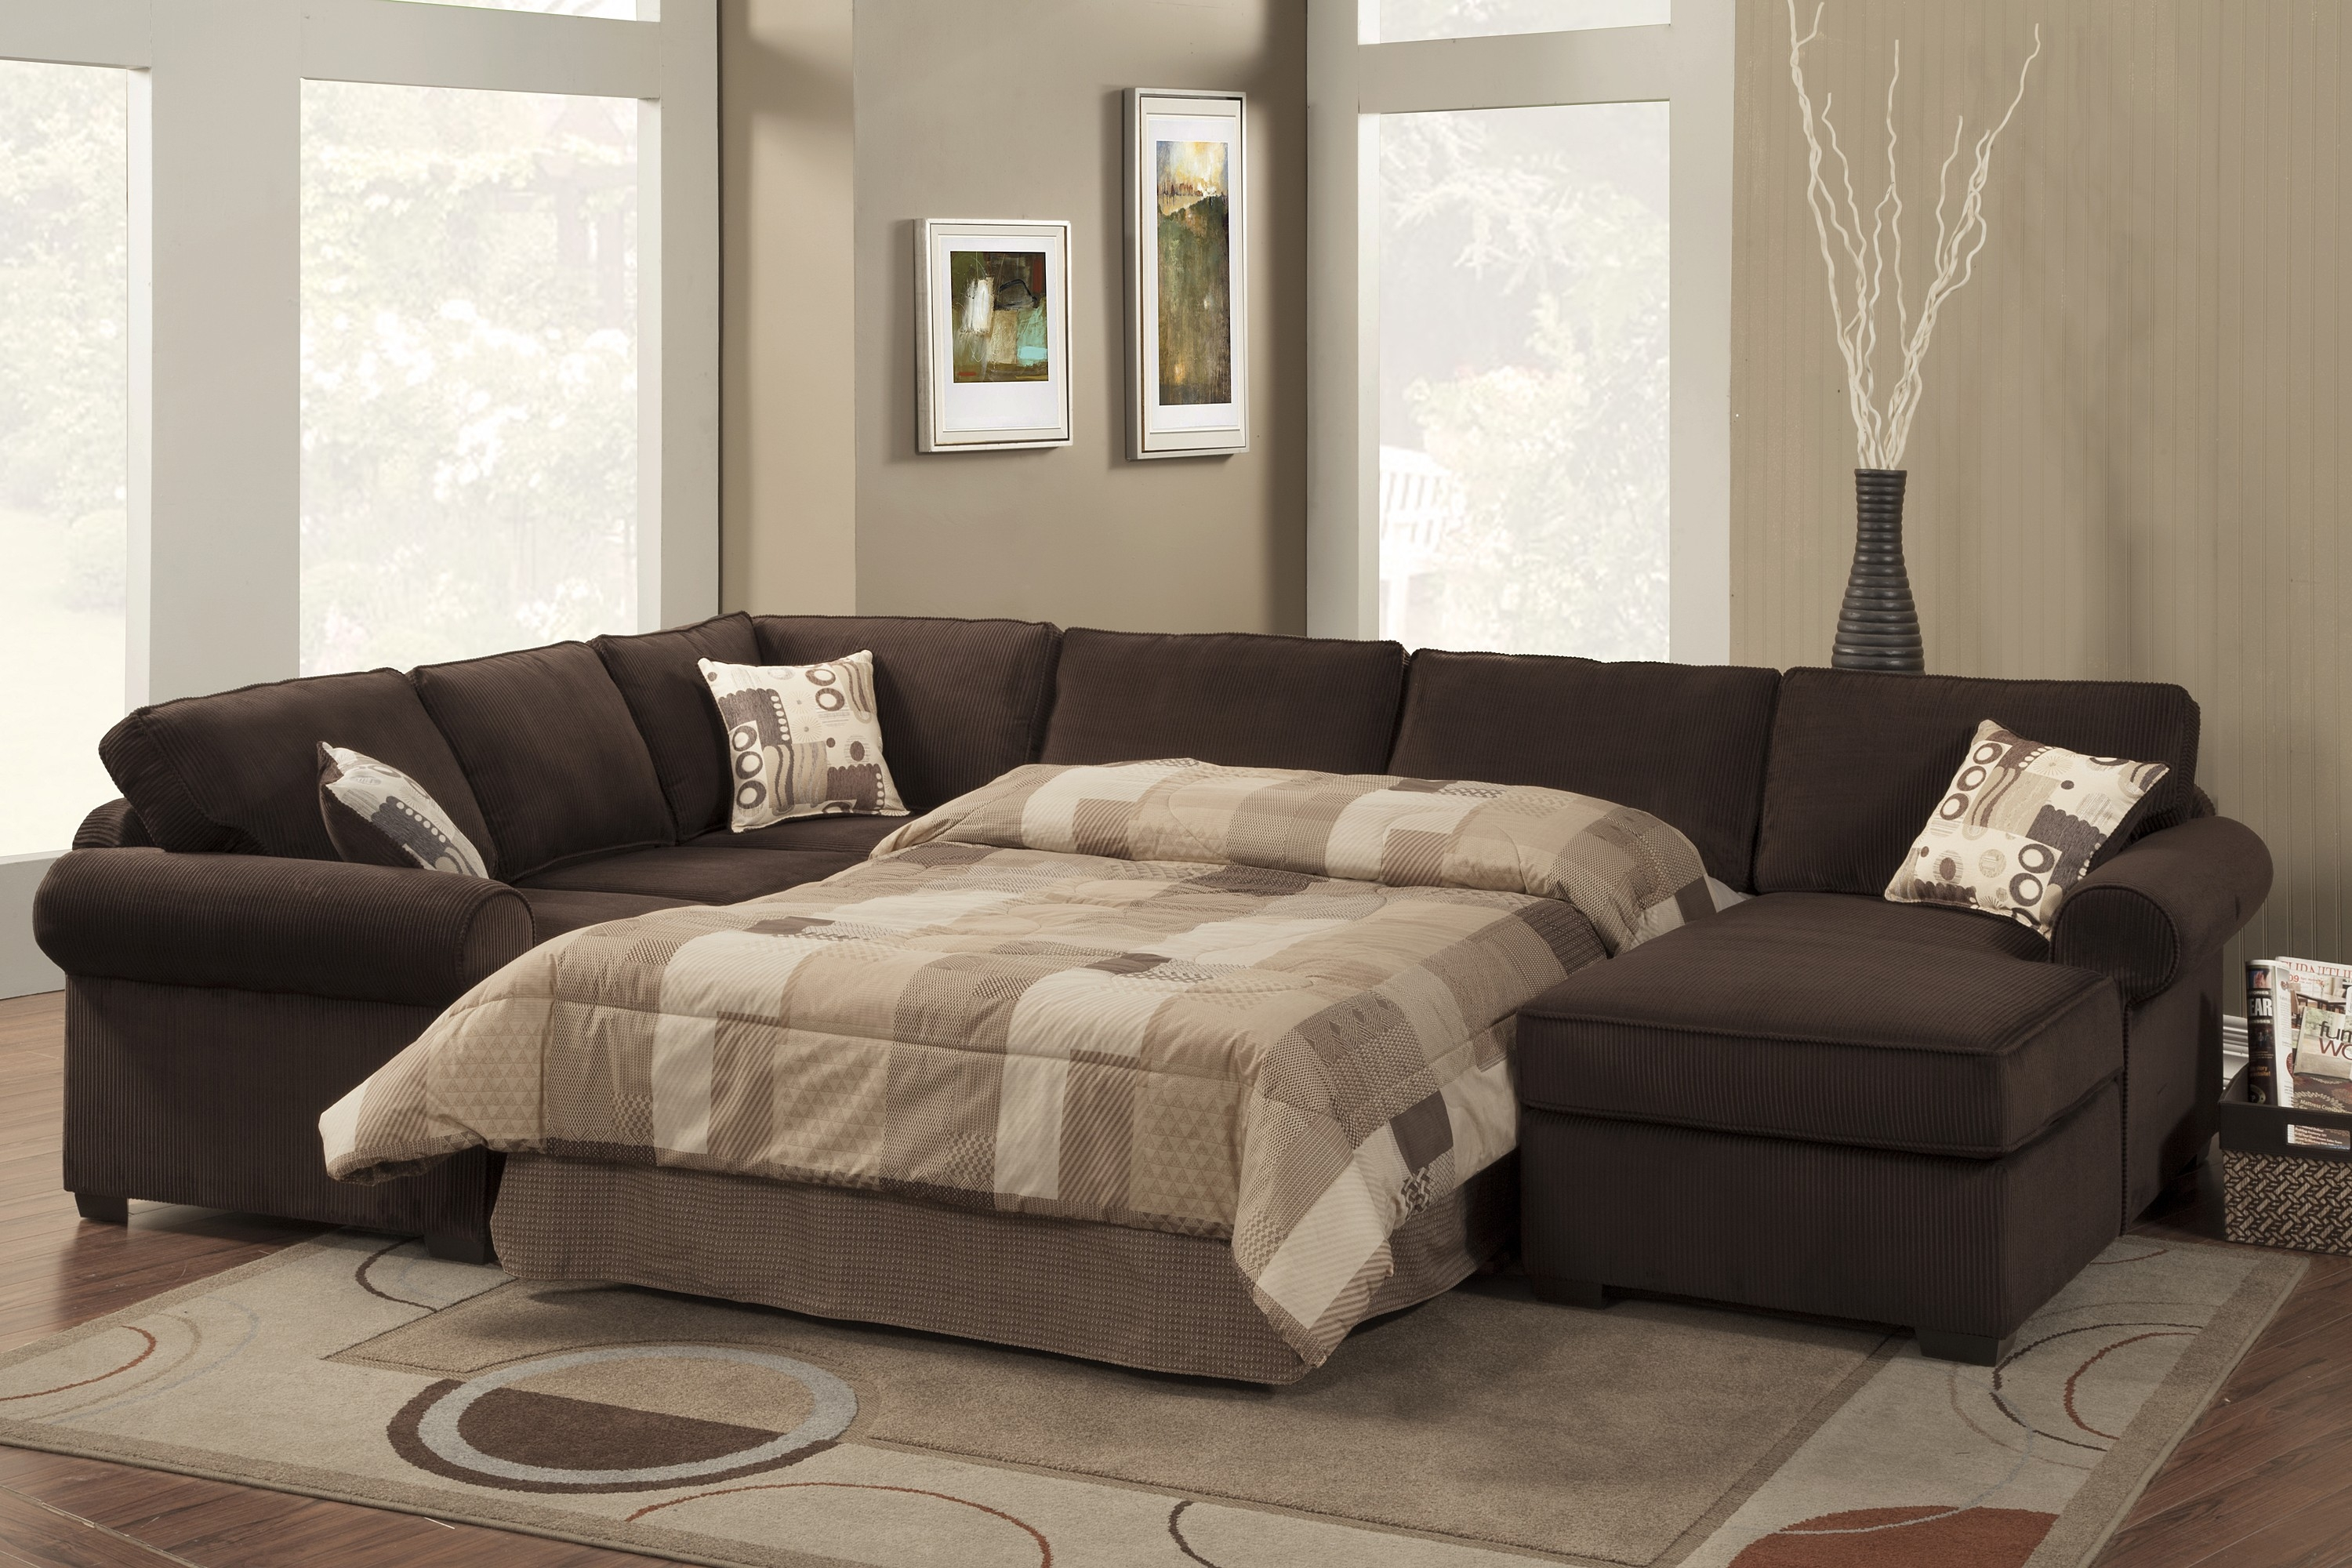 Featured Image of 3 Piece Sectional Sleeper Sofa